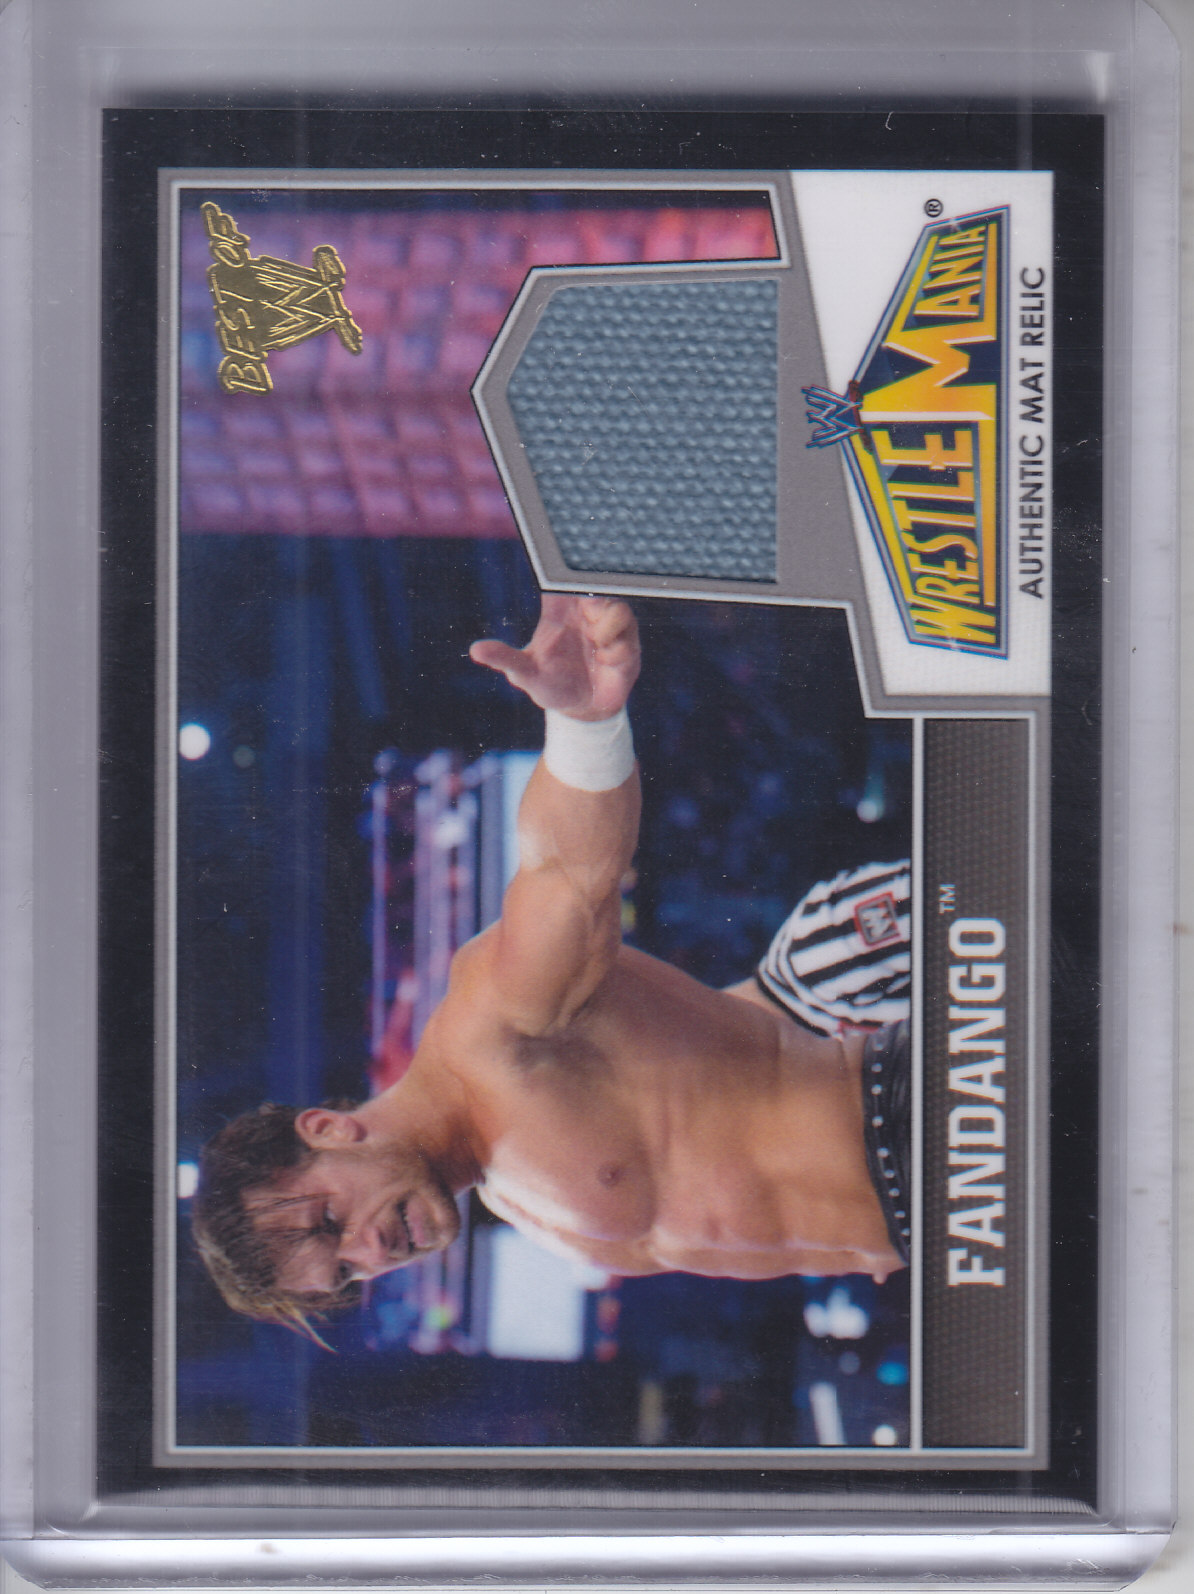 2013 Topps Best of WWE Wrestlemania 29 Mat Relics #9 Fandango